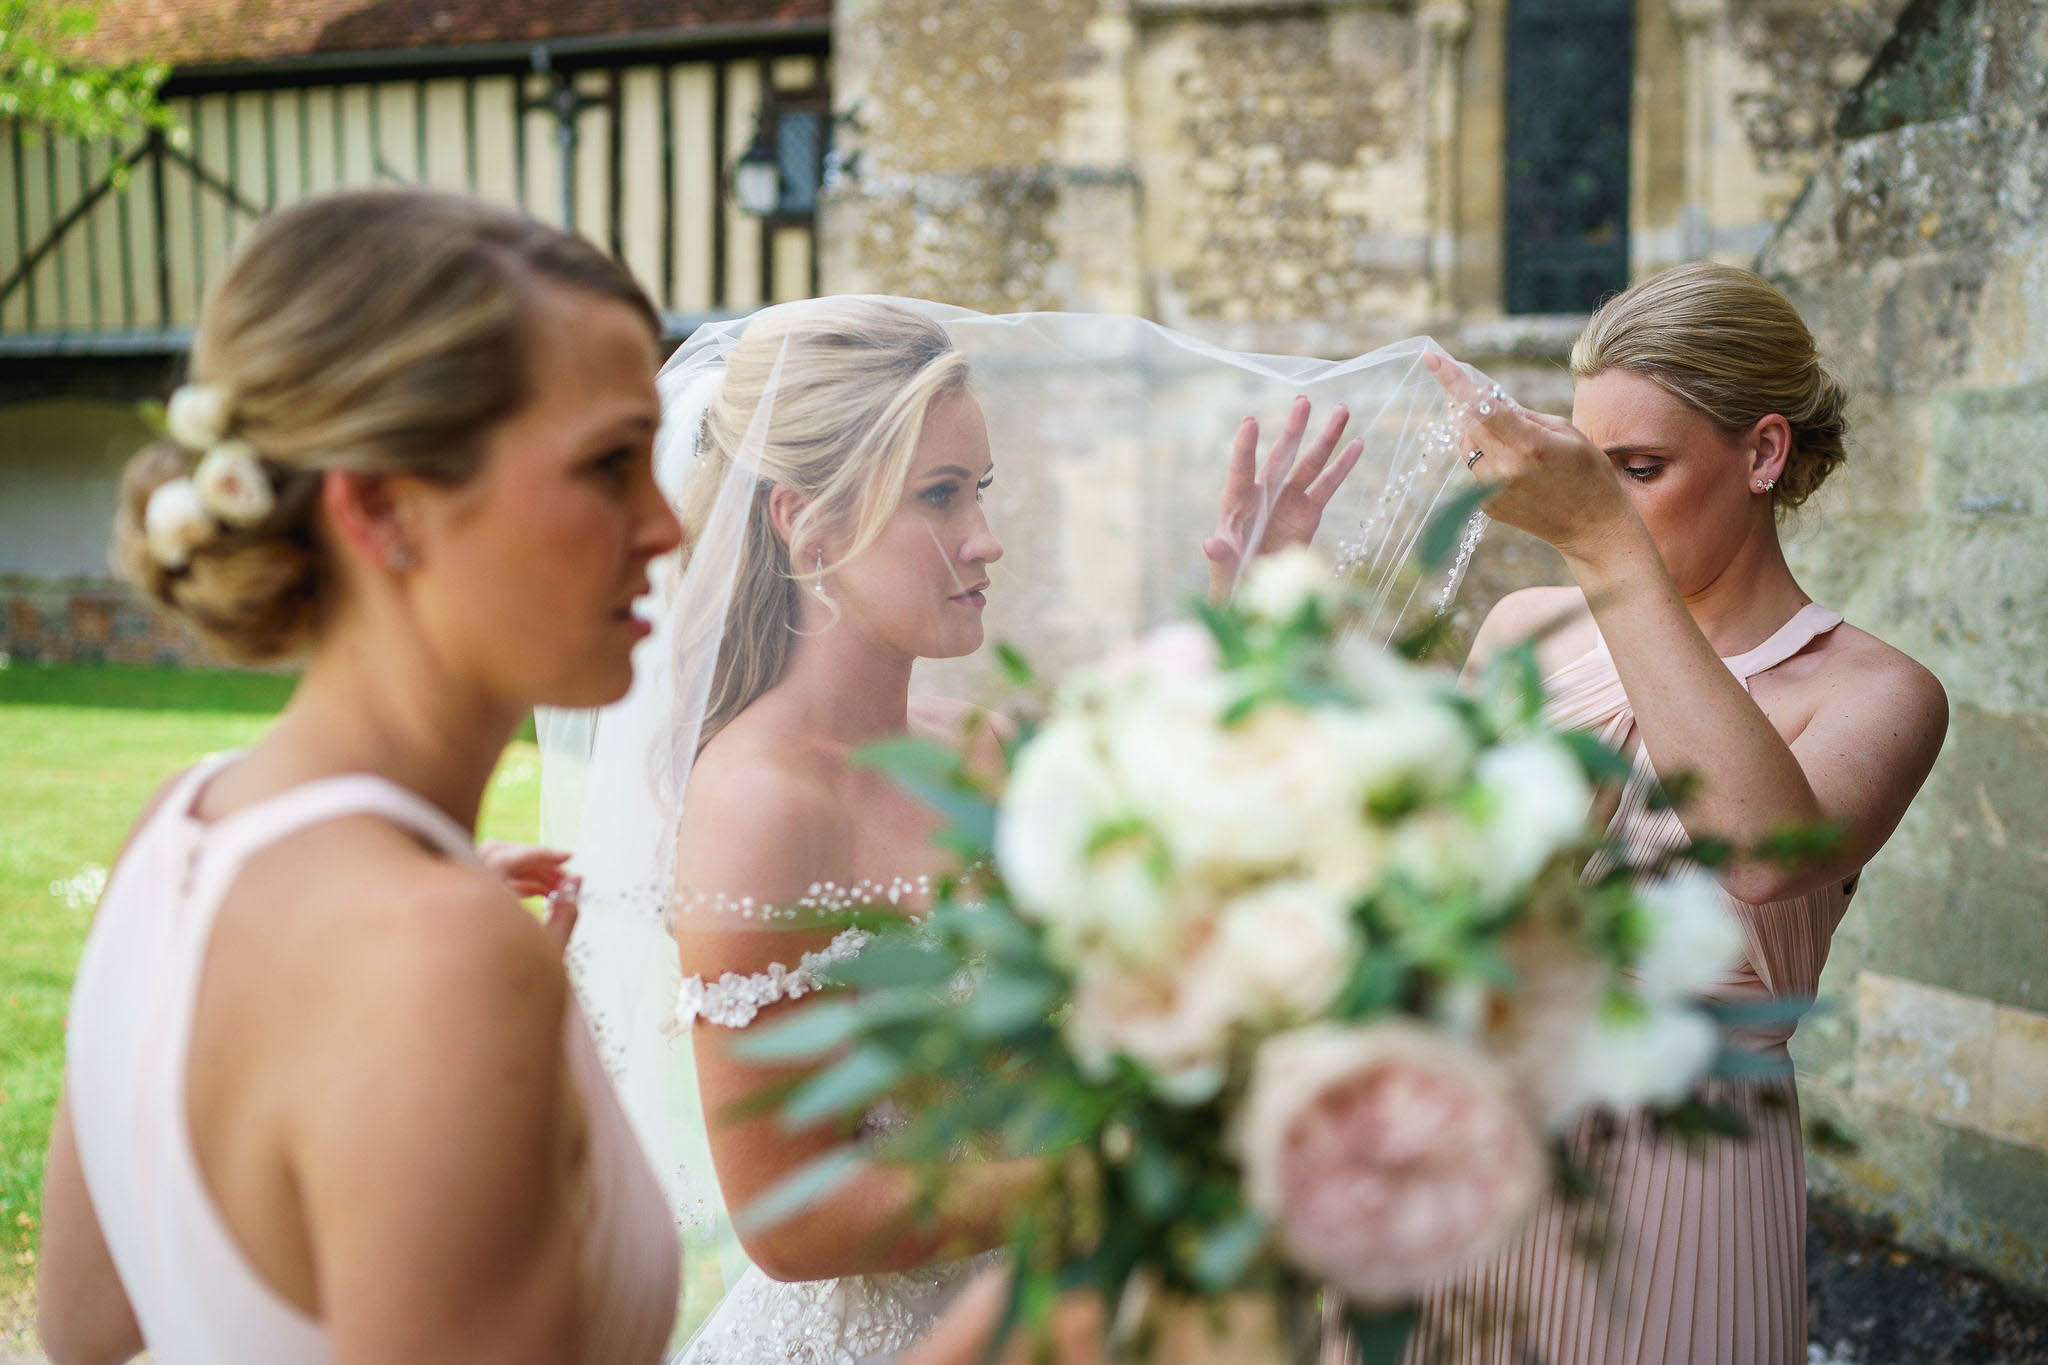 Our portfolio photos from some of our beautiful clients. Special bridal moments